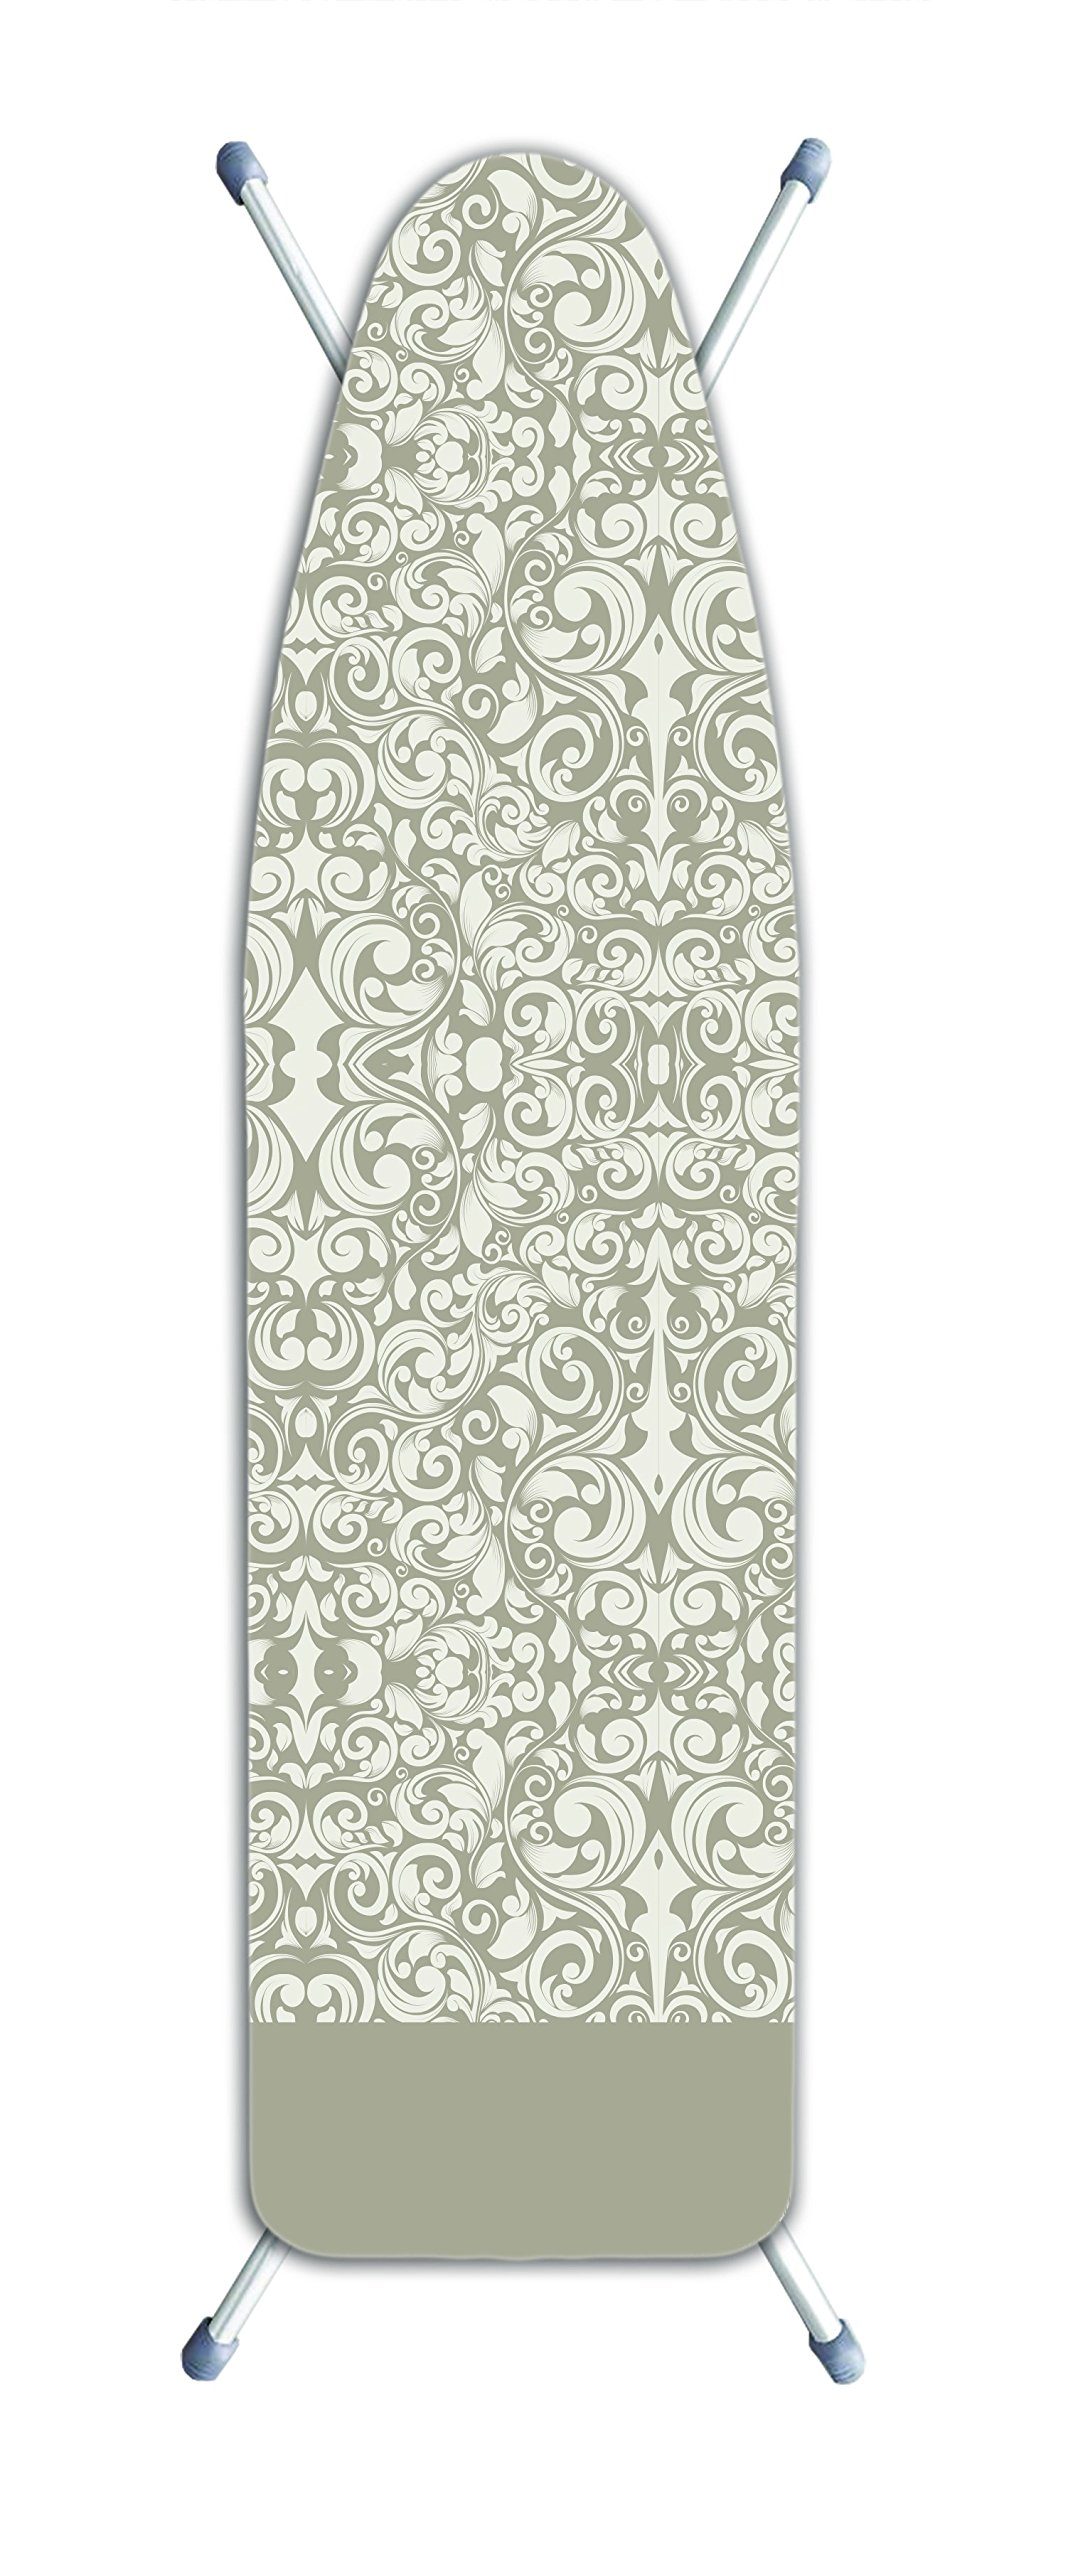 Laundry Solutions by Westex IB0320 Deluxe Extra Thick Damask Ironing Board Cover, Beige